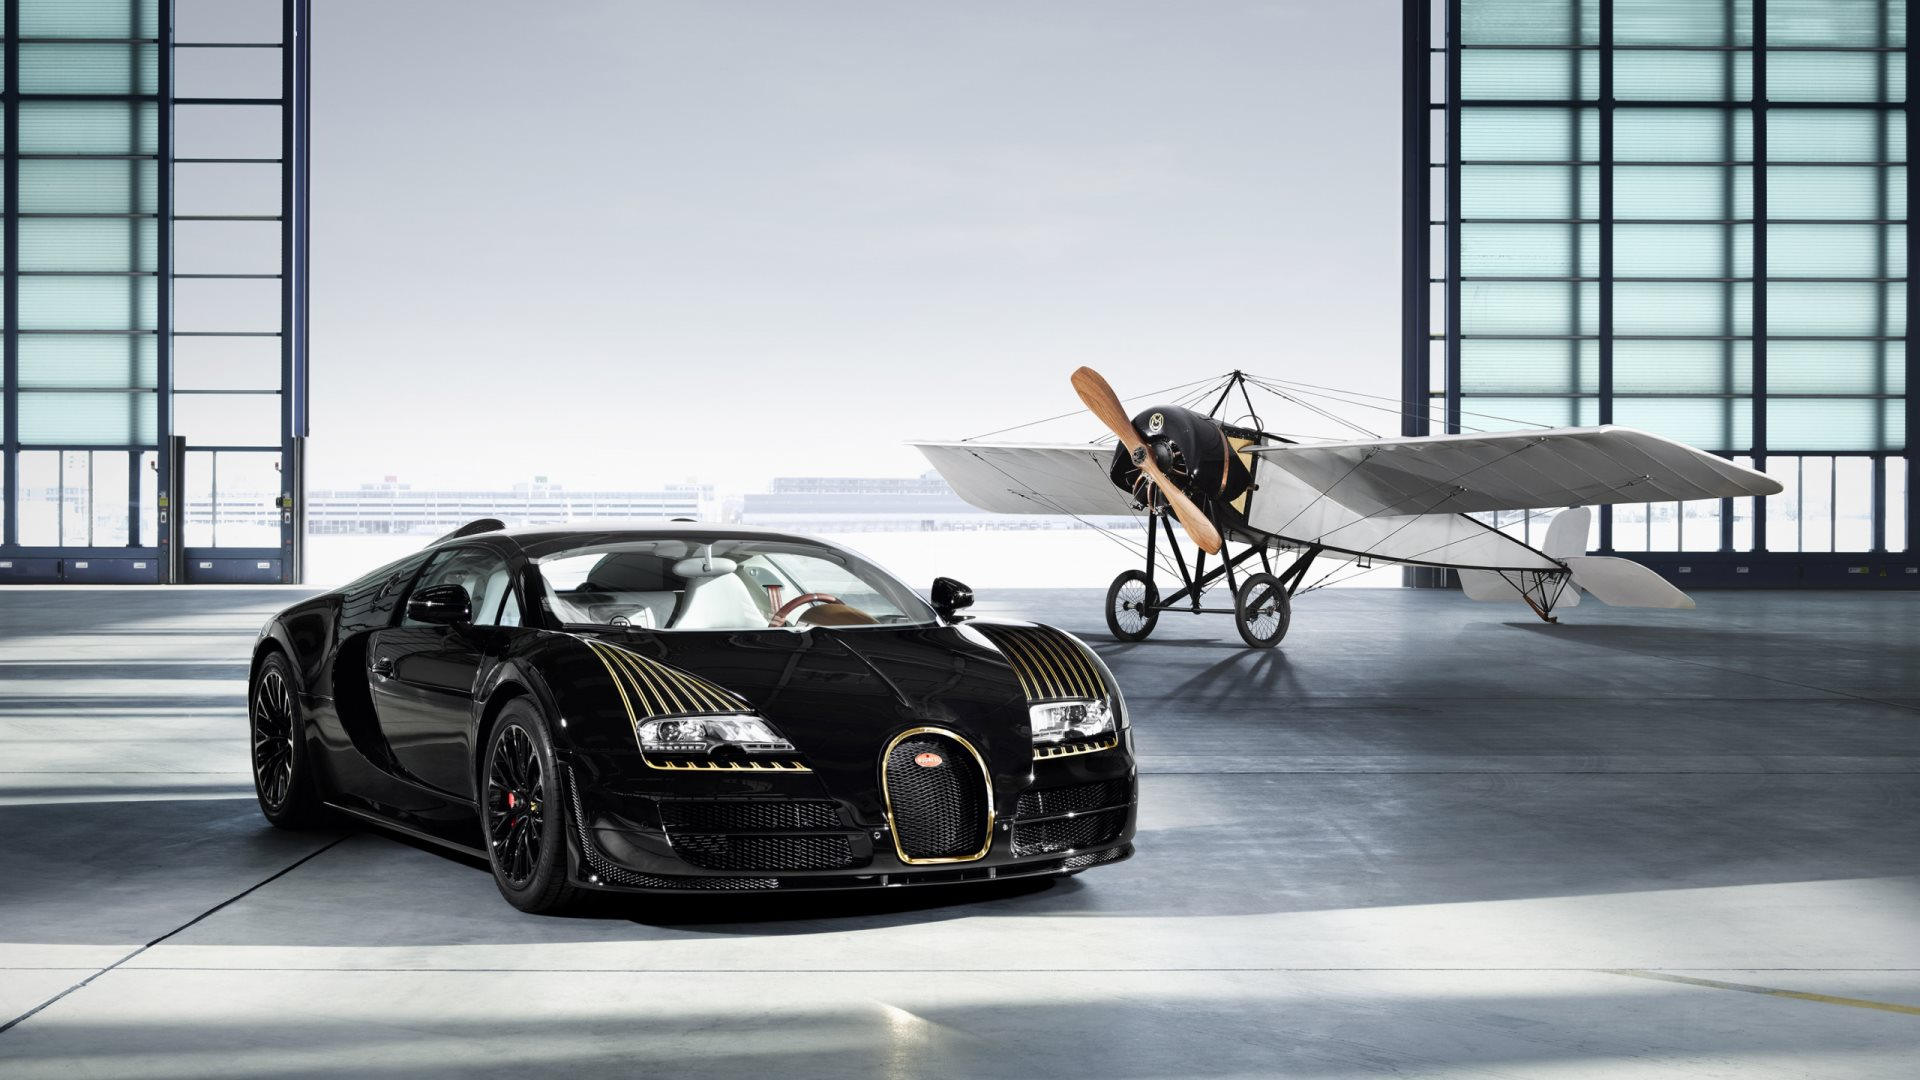 bugatti veyron grand sport vitesse black bess hd wallpapers 4k macbook and desktop backgrounds. Black Bedroom Furniture Sets. Home Design Ideas